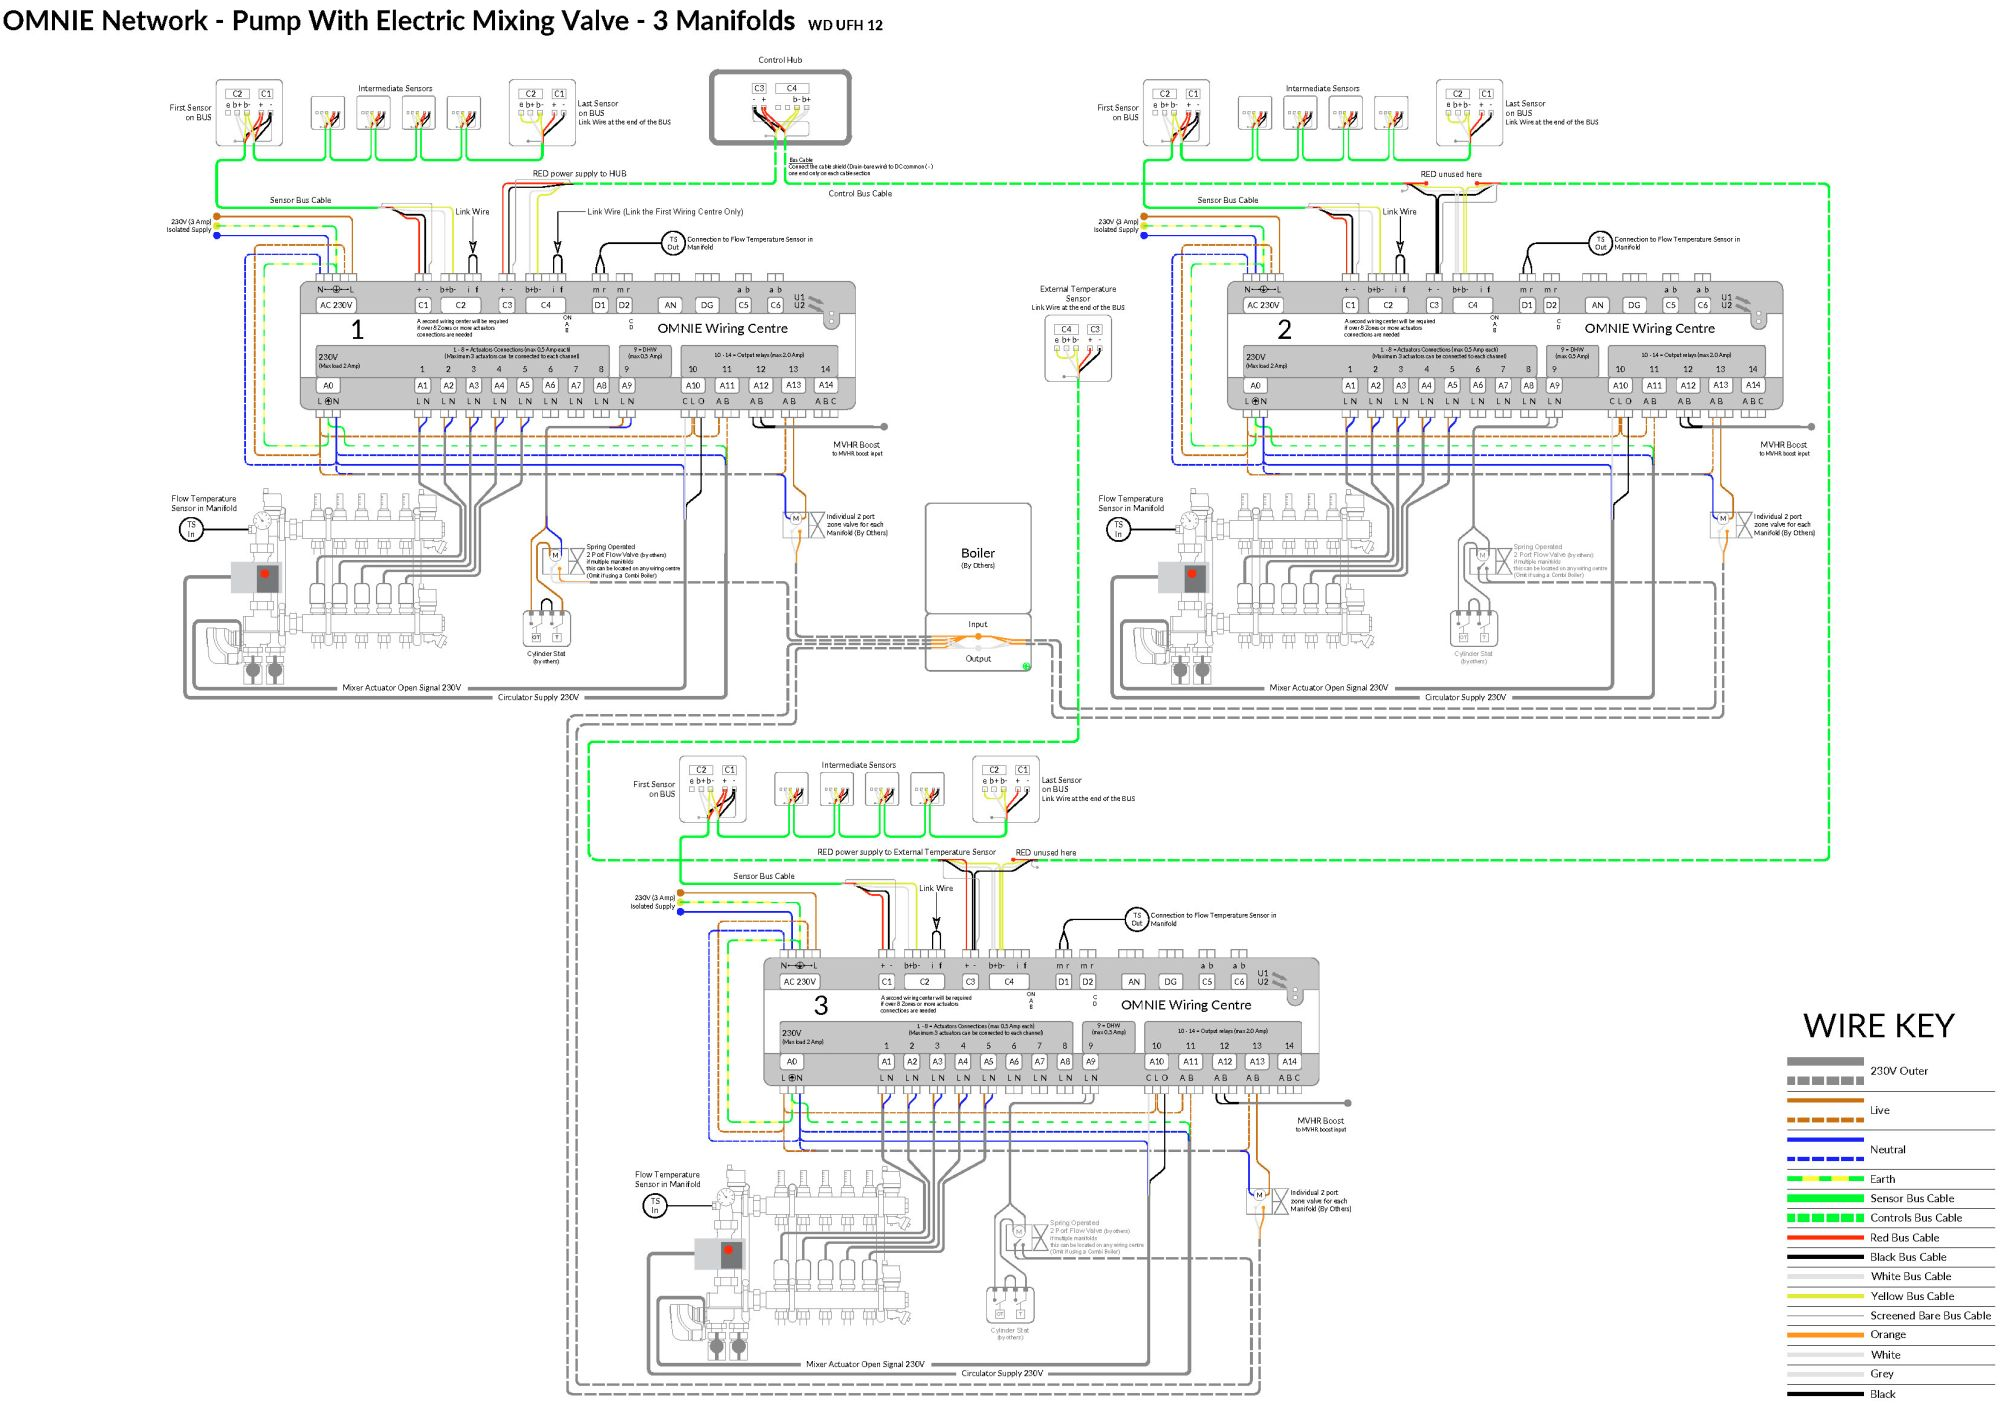 hight resolution of use this wiring diagram for 3 manifolds and wiring centres